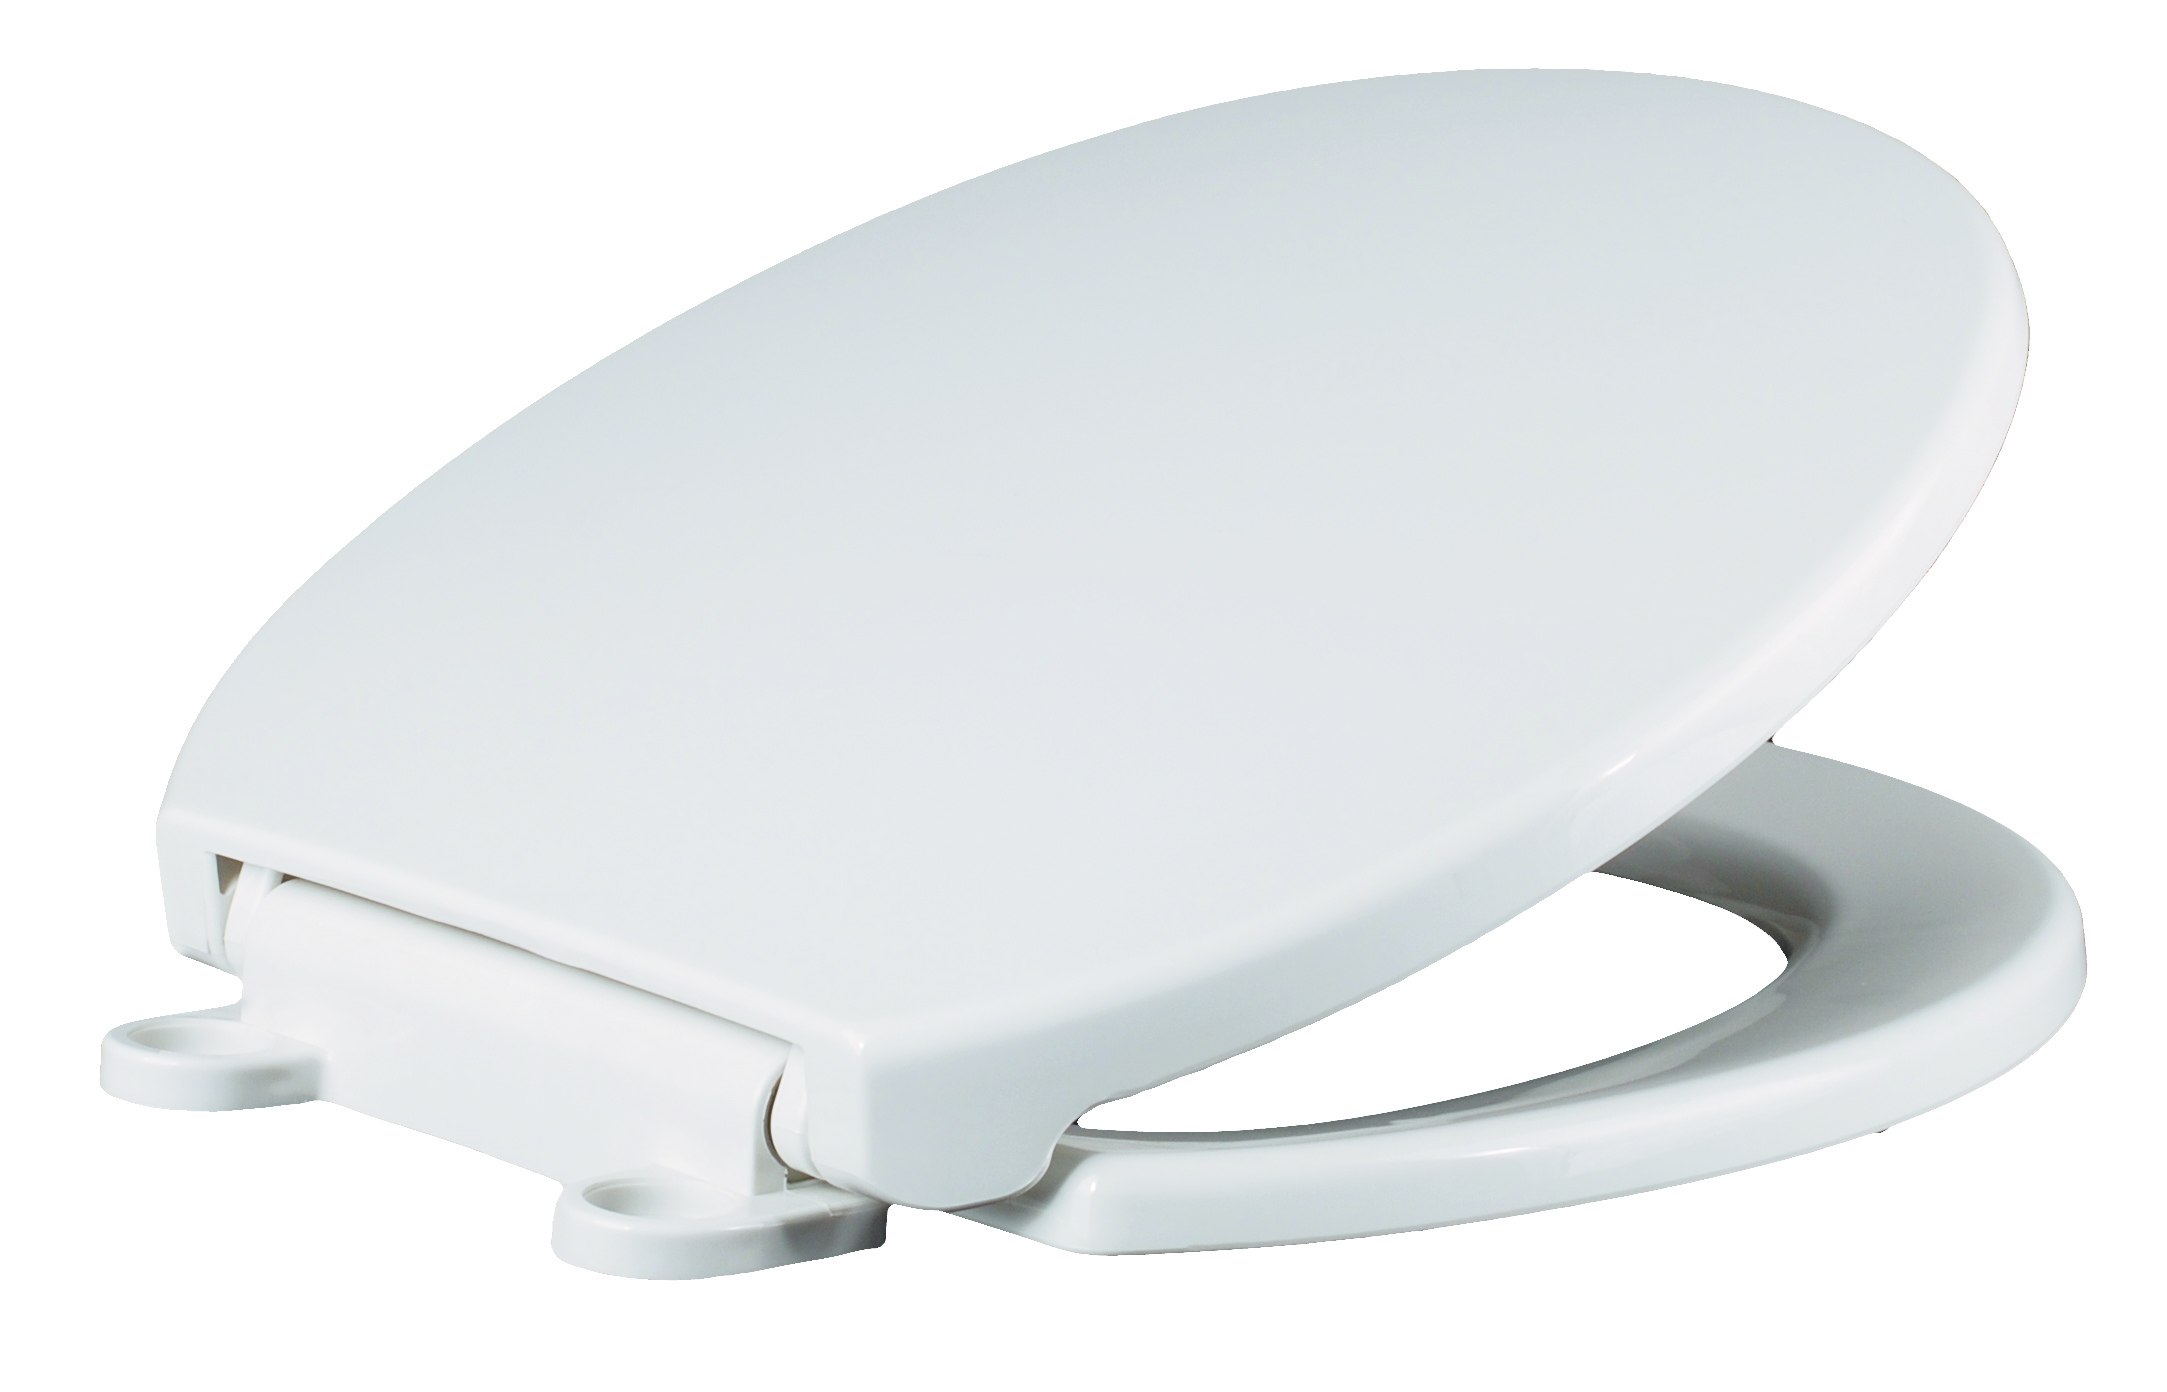 plastic toilet seat covers. Product Thumnail Image Zoom  American Standard Plastic Toilet Seat Cover in Round Shape from